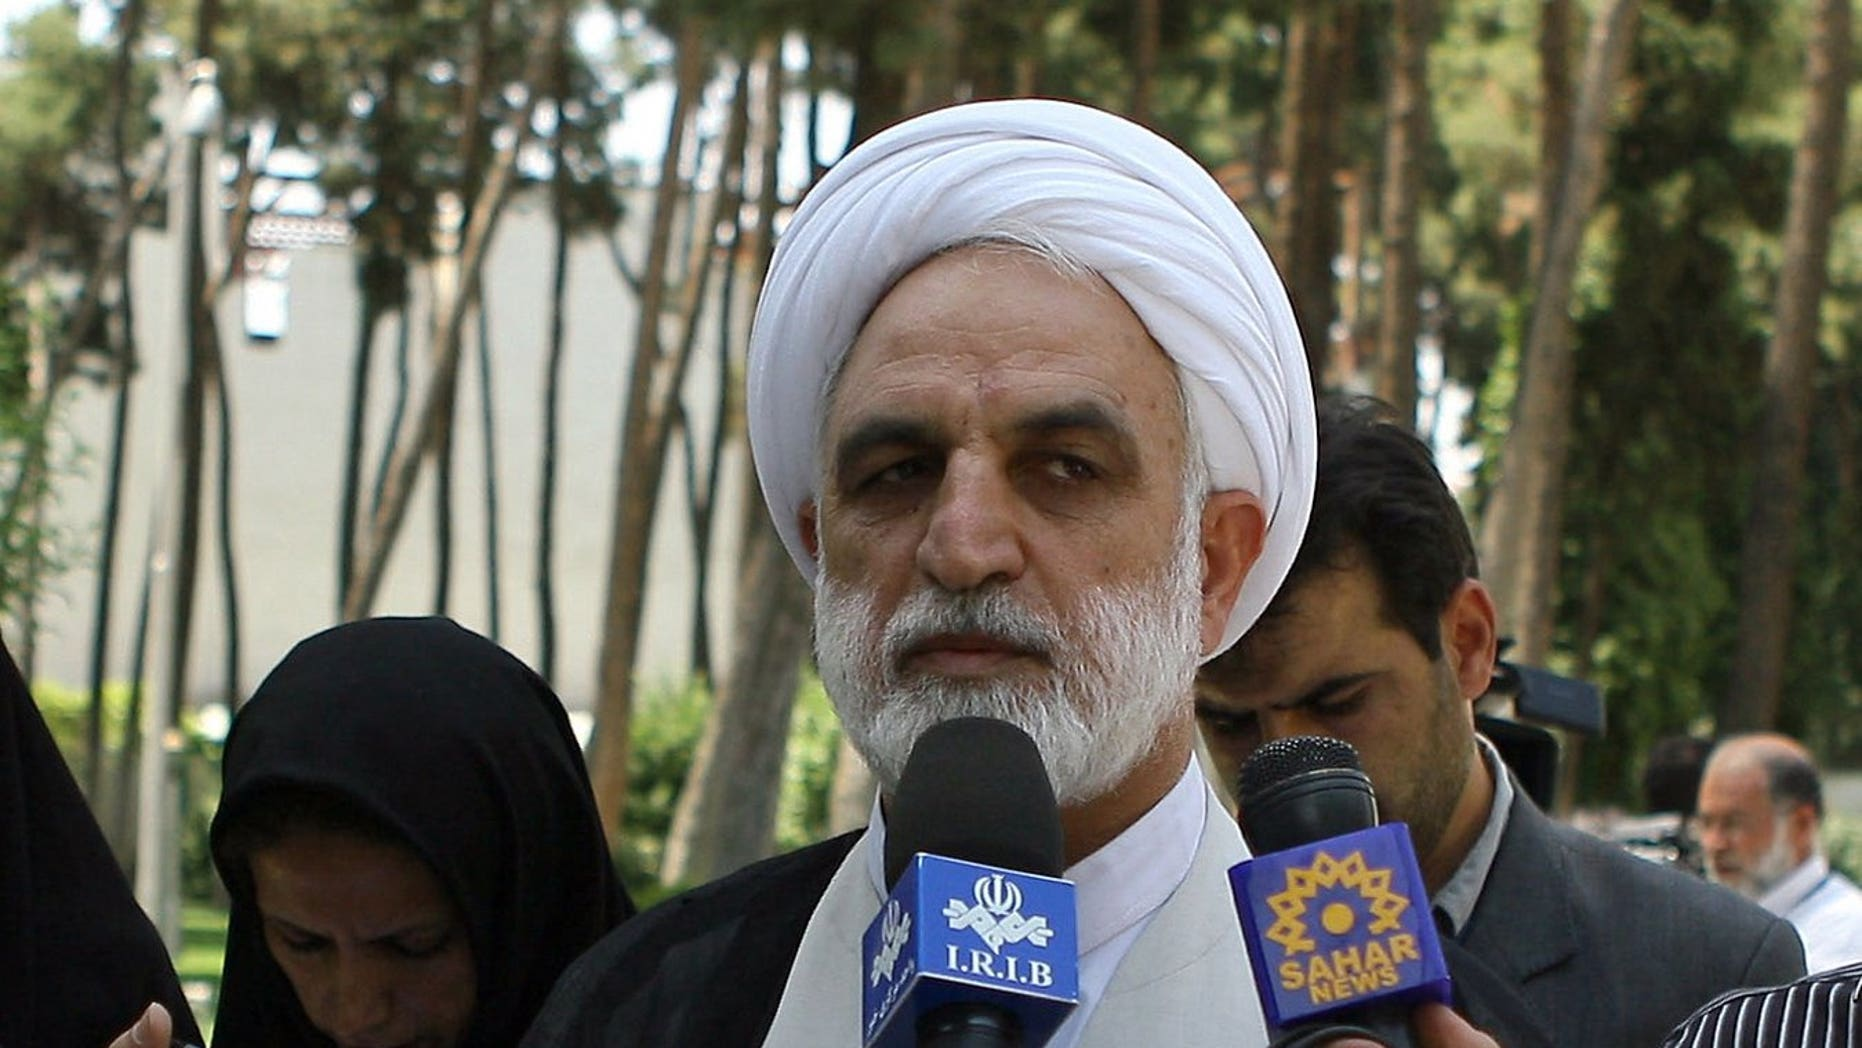 Iran's top prosecutor general Gholam Hossein Mohseni Ejei is pictured in Tehran on June 24, 2009.